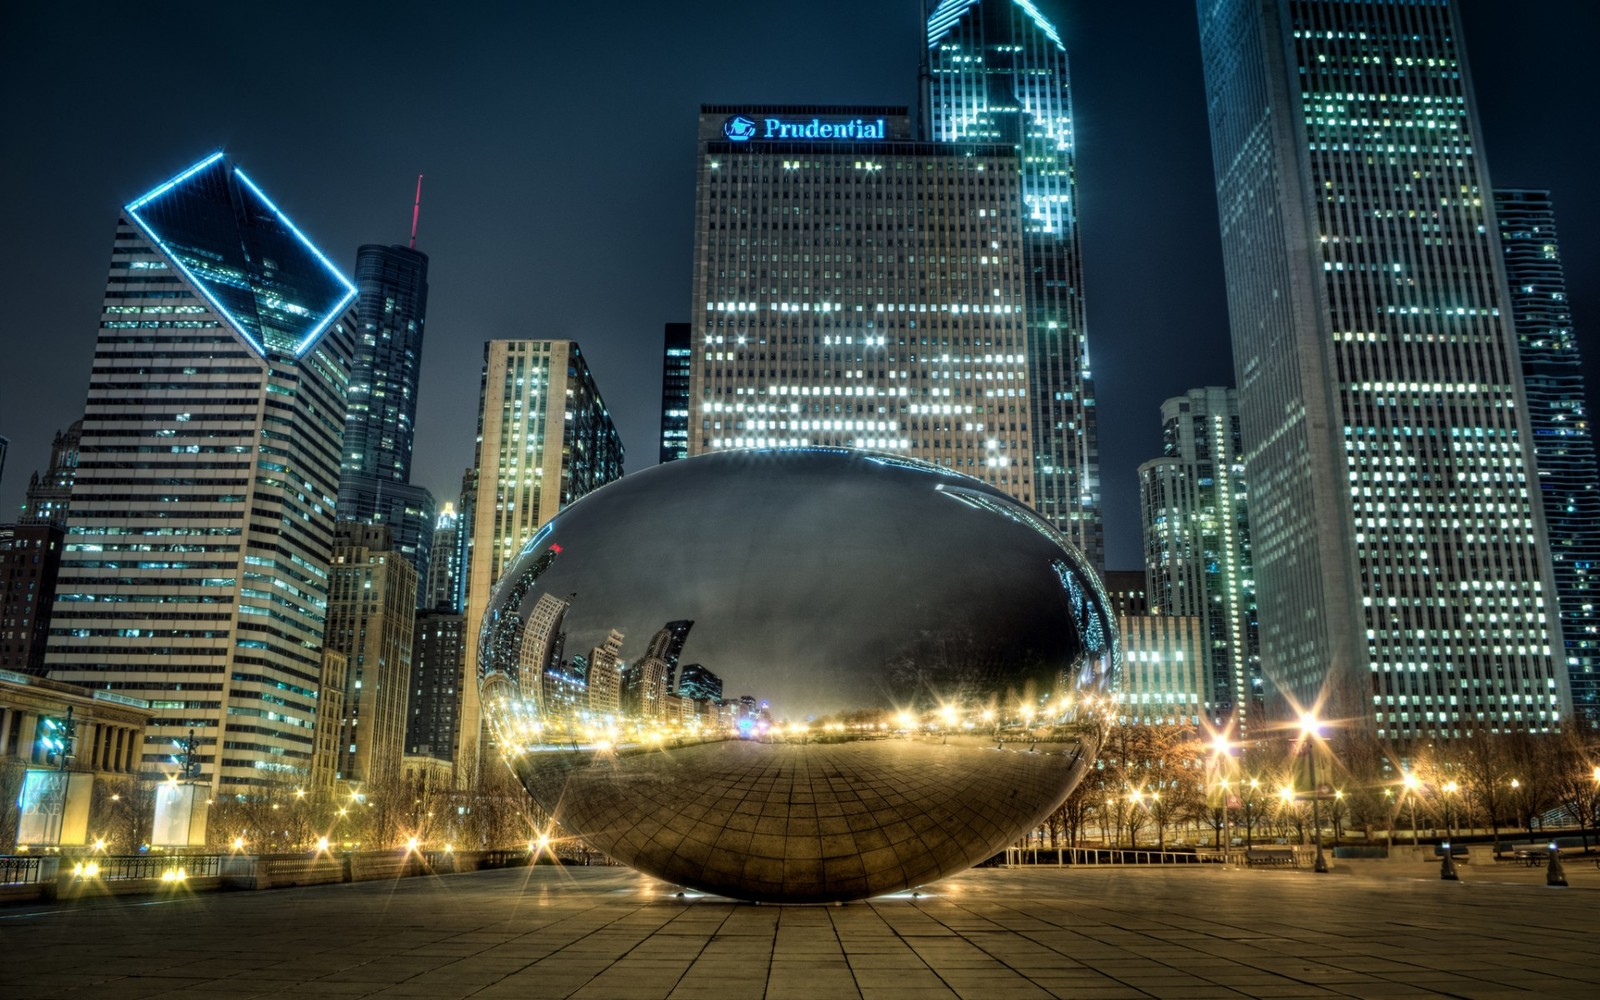 Night Skyline Wallpaper Chicago Bean Wiring Diagrams With Foldback Current Limiting Circuit Diagram Tradeoficcom Sky Gate South Side At And 14 Similar Items Rh Bonanza Com New